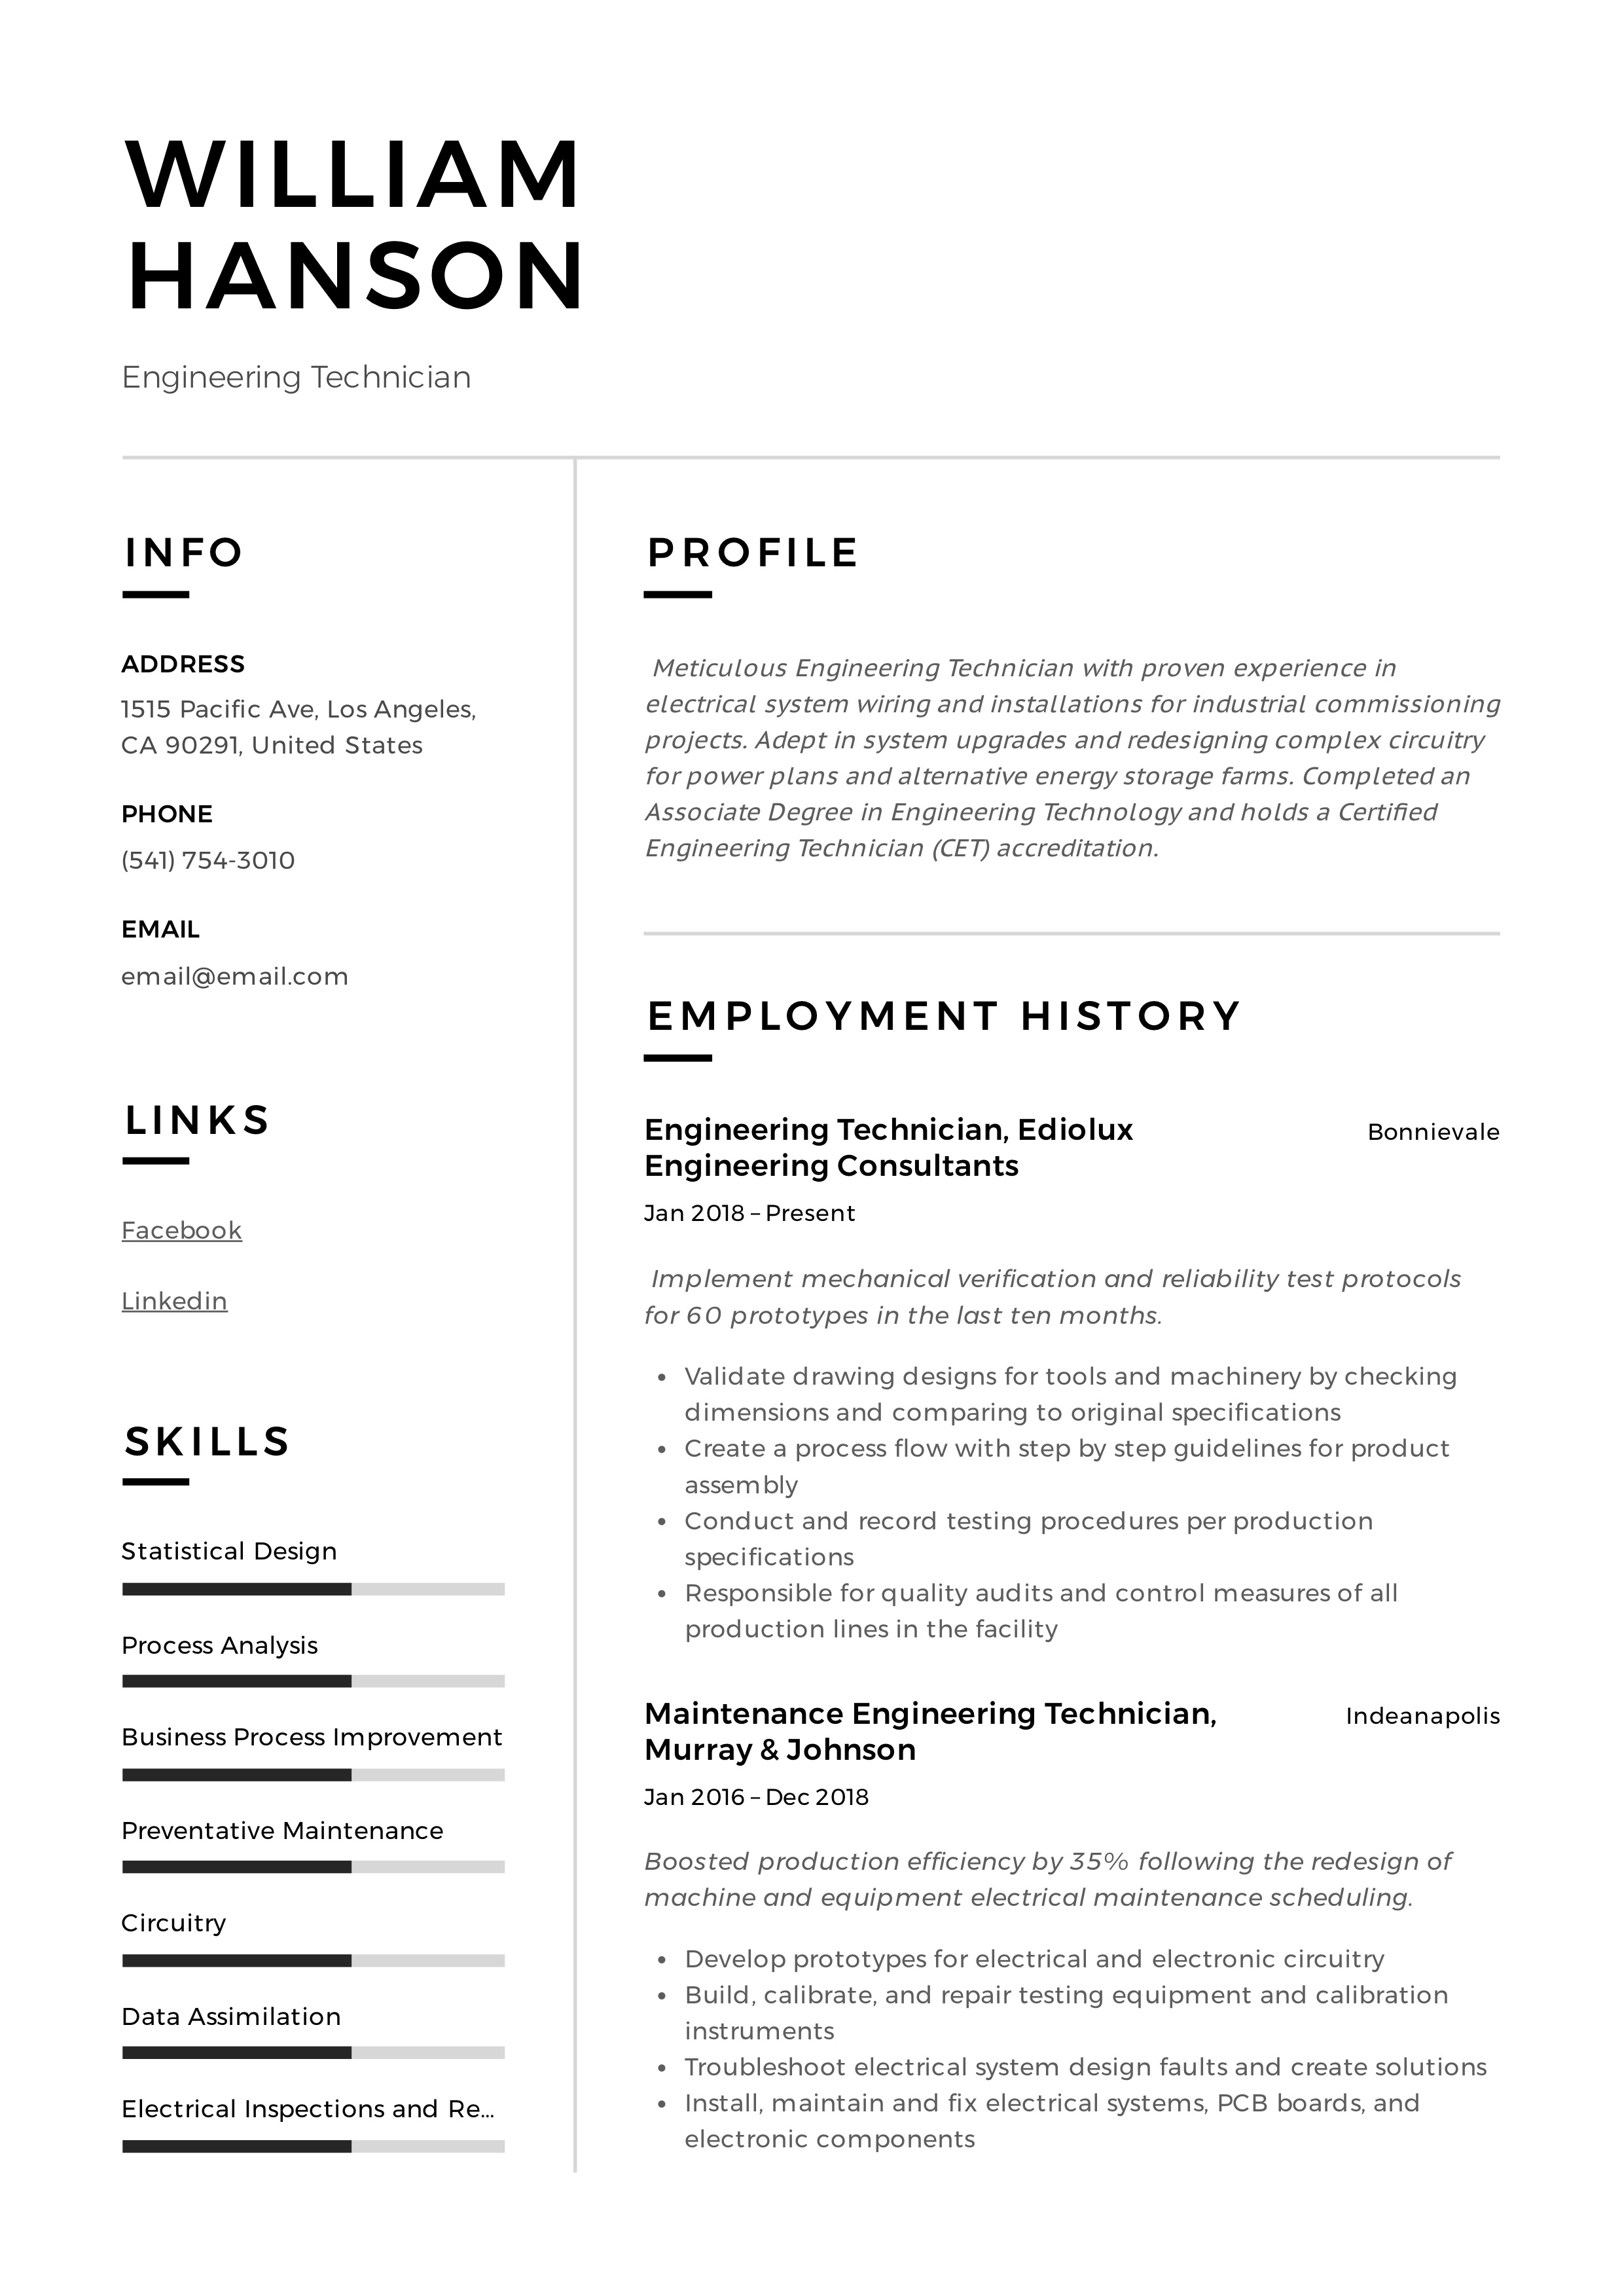 Engineering Technician Resume Writing Guide 12 Templates 2020